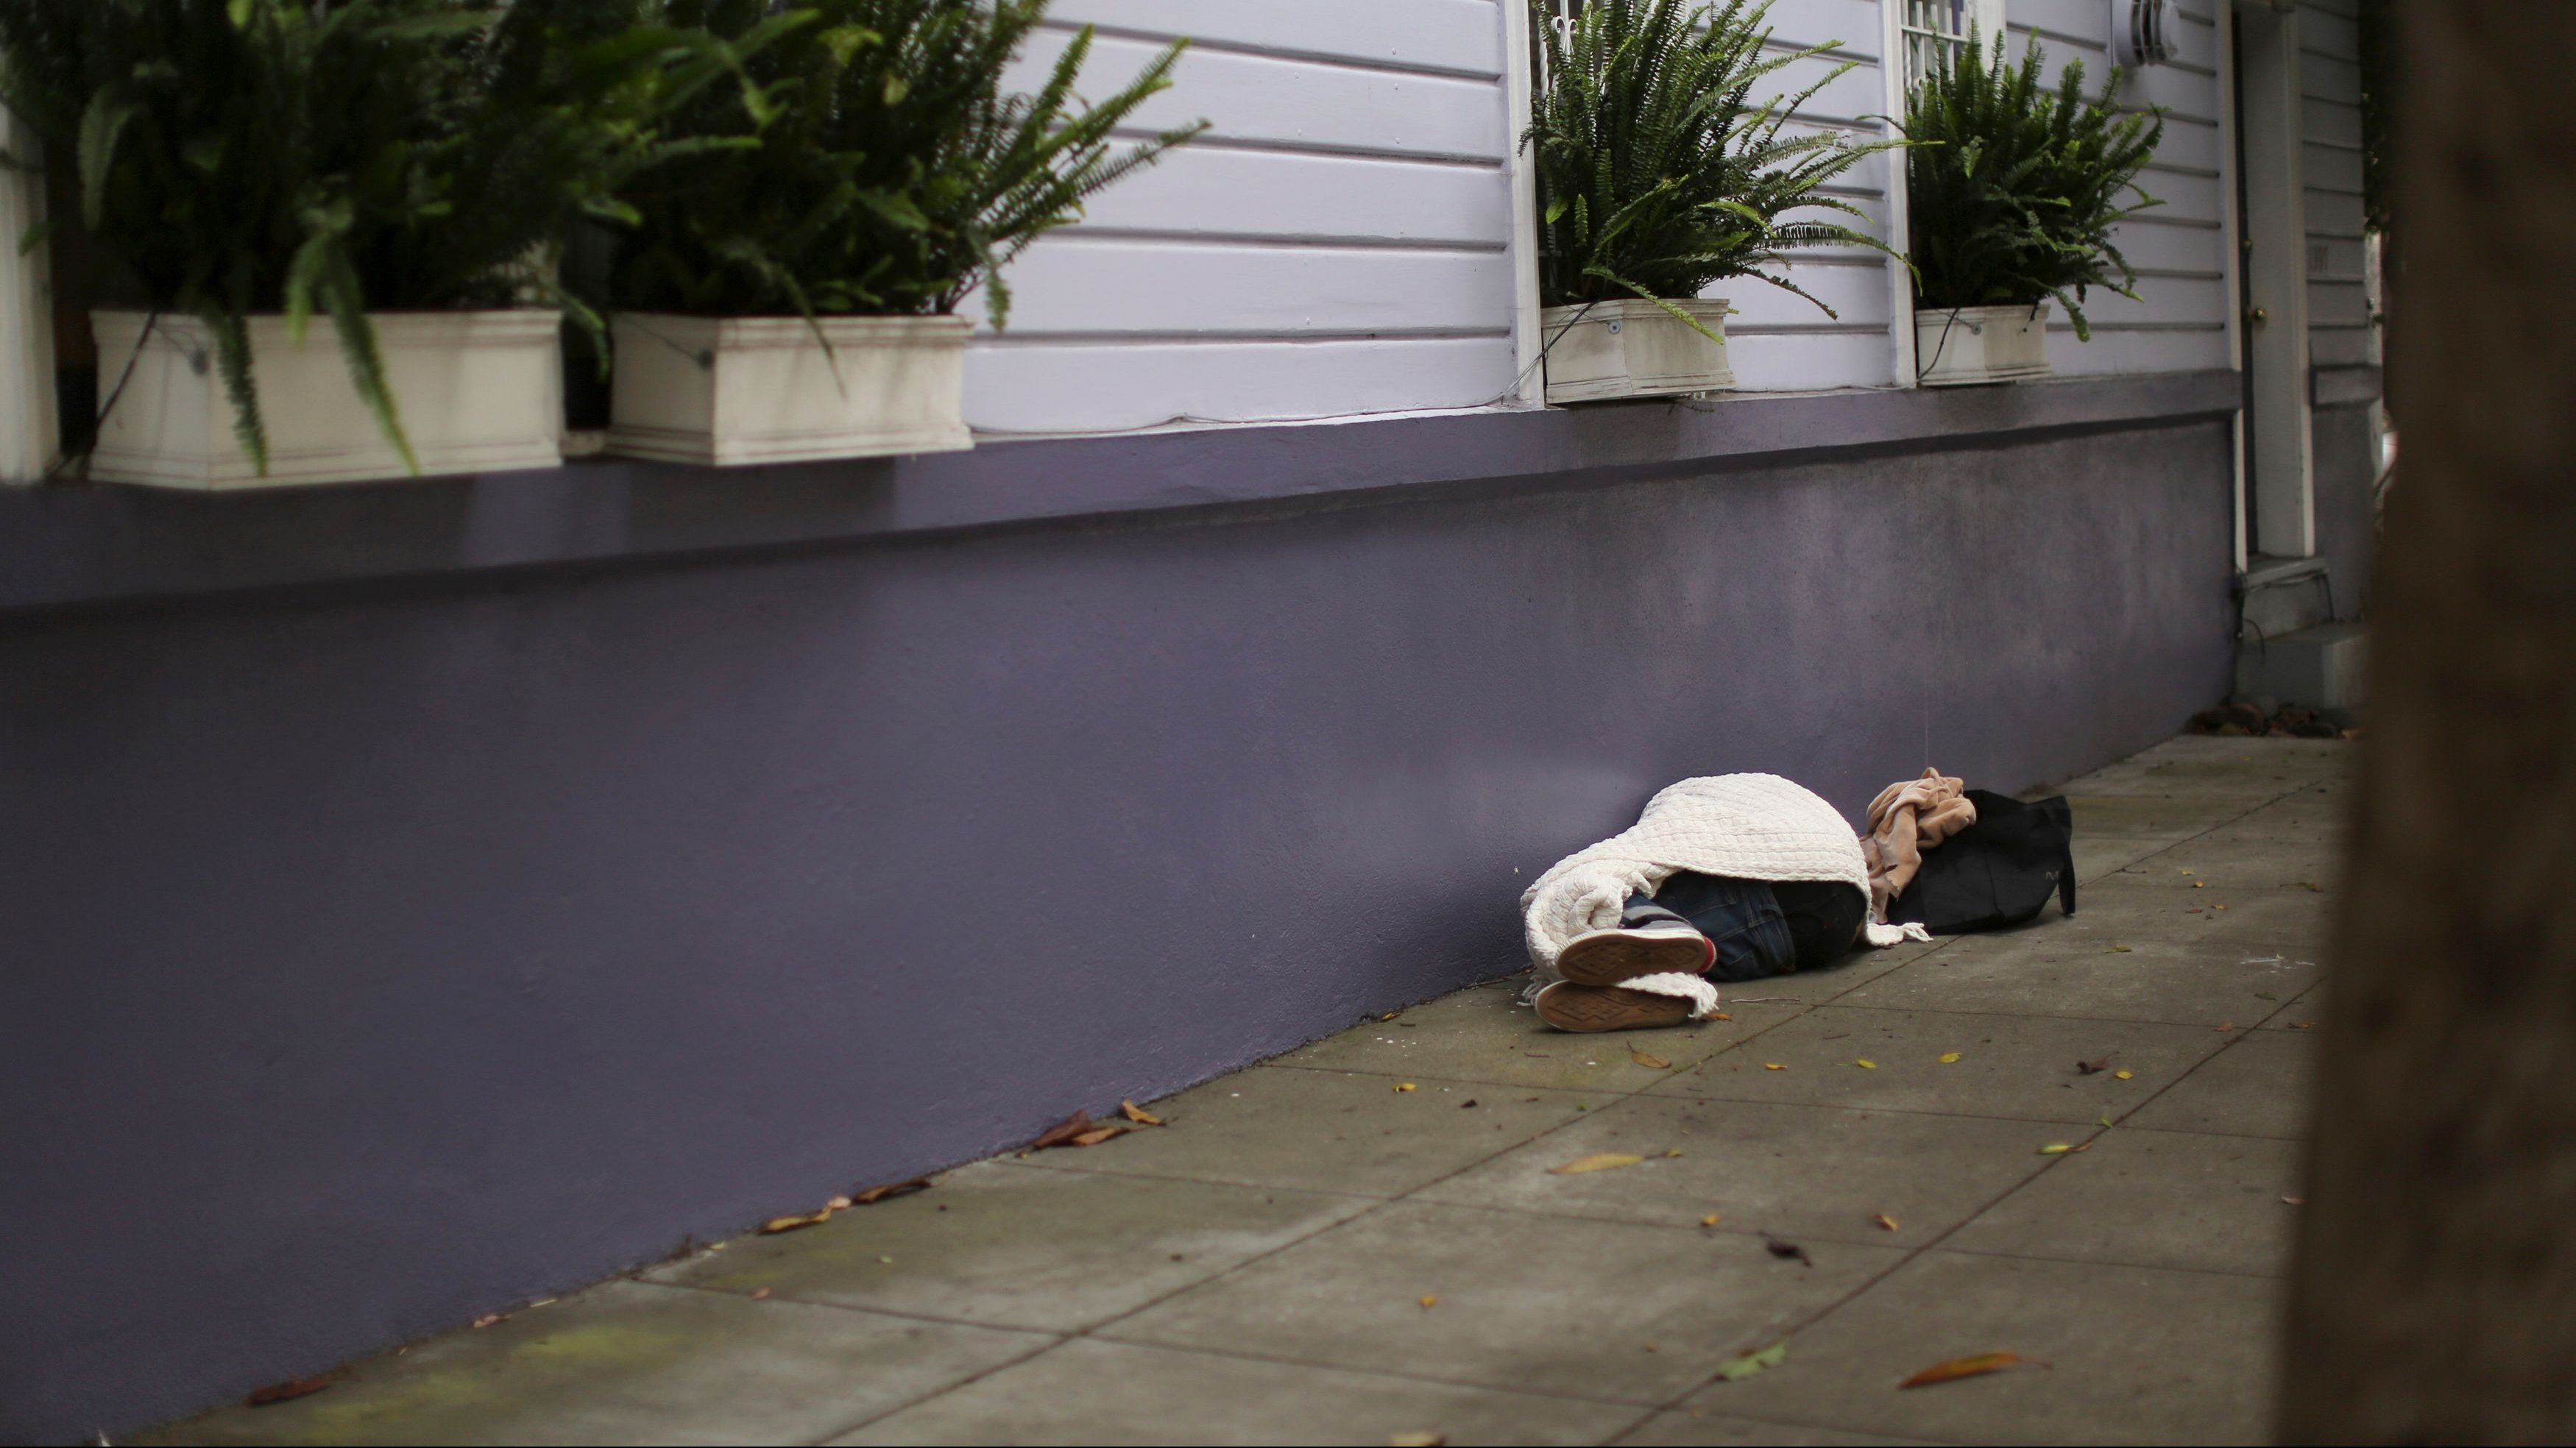 A person sleeps on a sidewalk in the Haight Ashbury neighborhood in San Francisco, California July 17, 2014. The median price for a single-family home or condominium rose to $1 million in June, according to a report released by DataQuick.